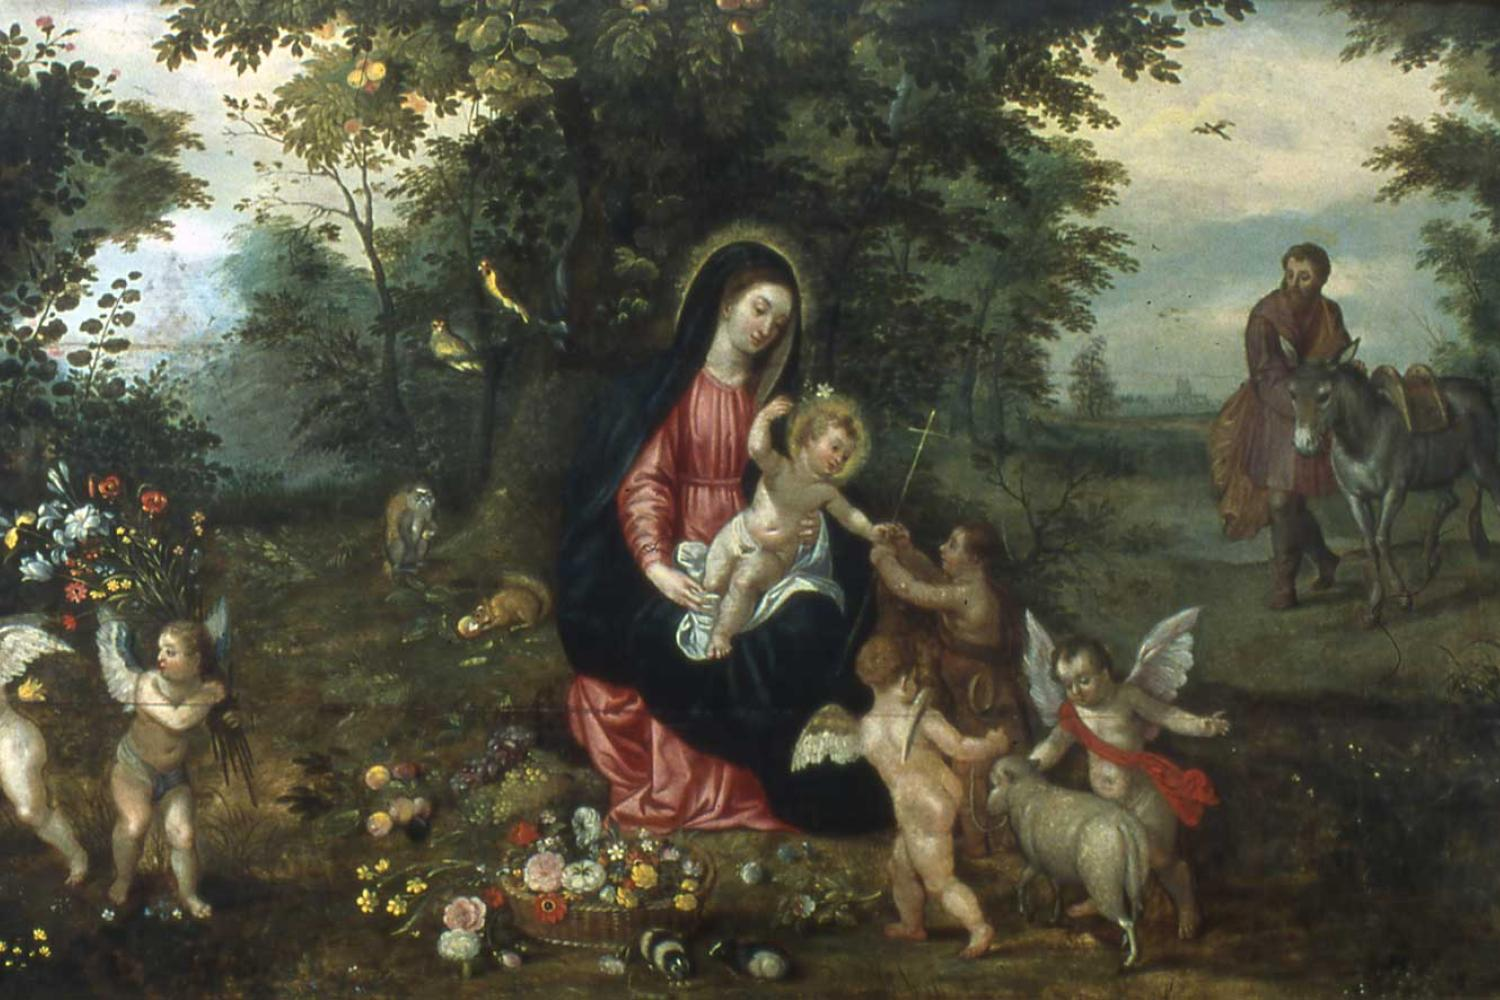 Painting of woman (Mary) holding baby (Jesus) surrounded by cherubs while man (Joseph) walks with mule.